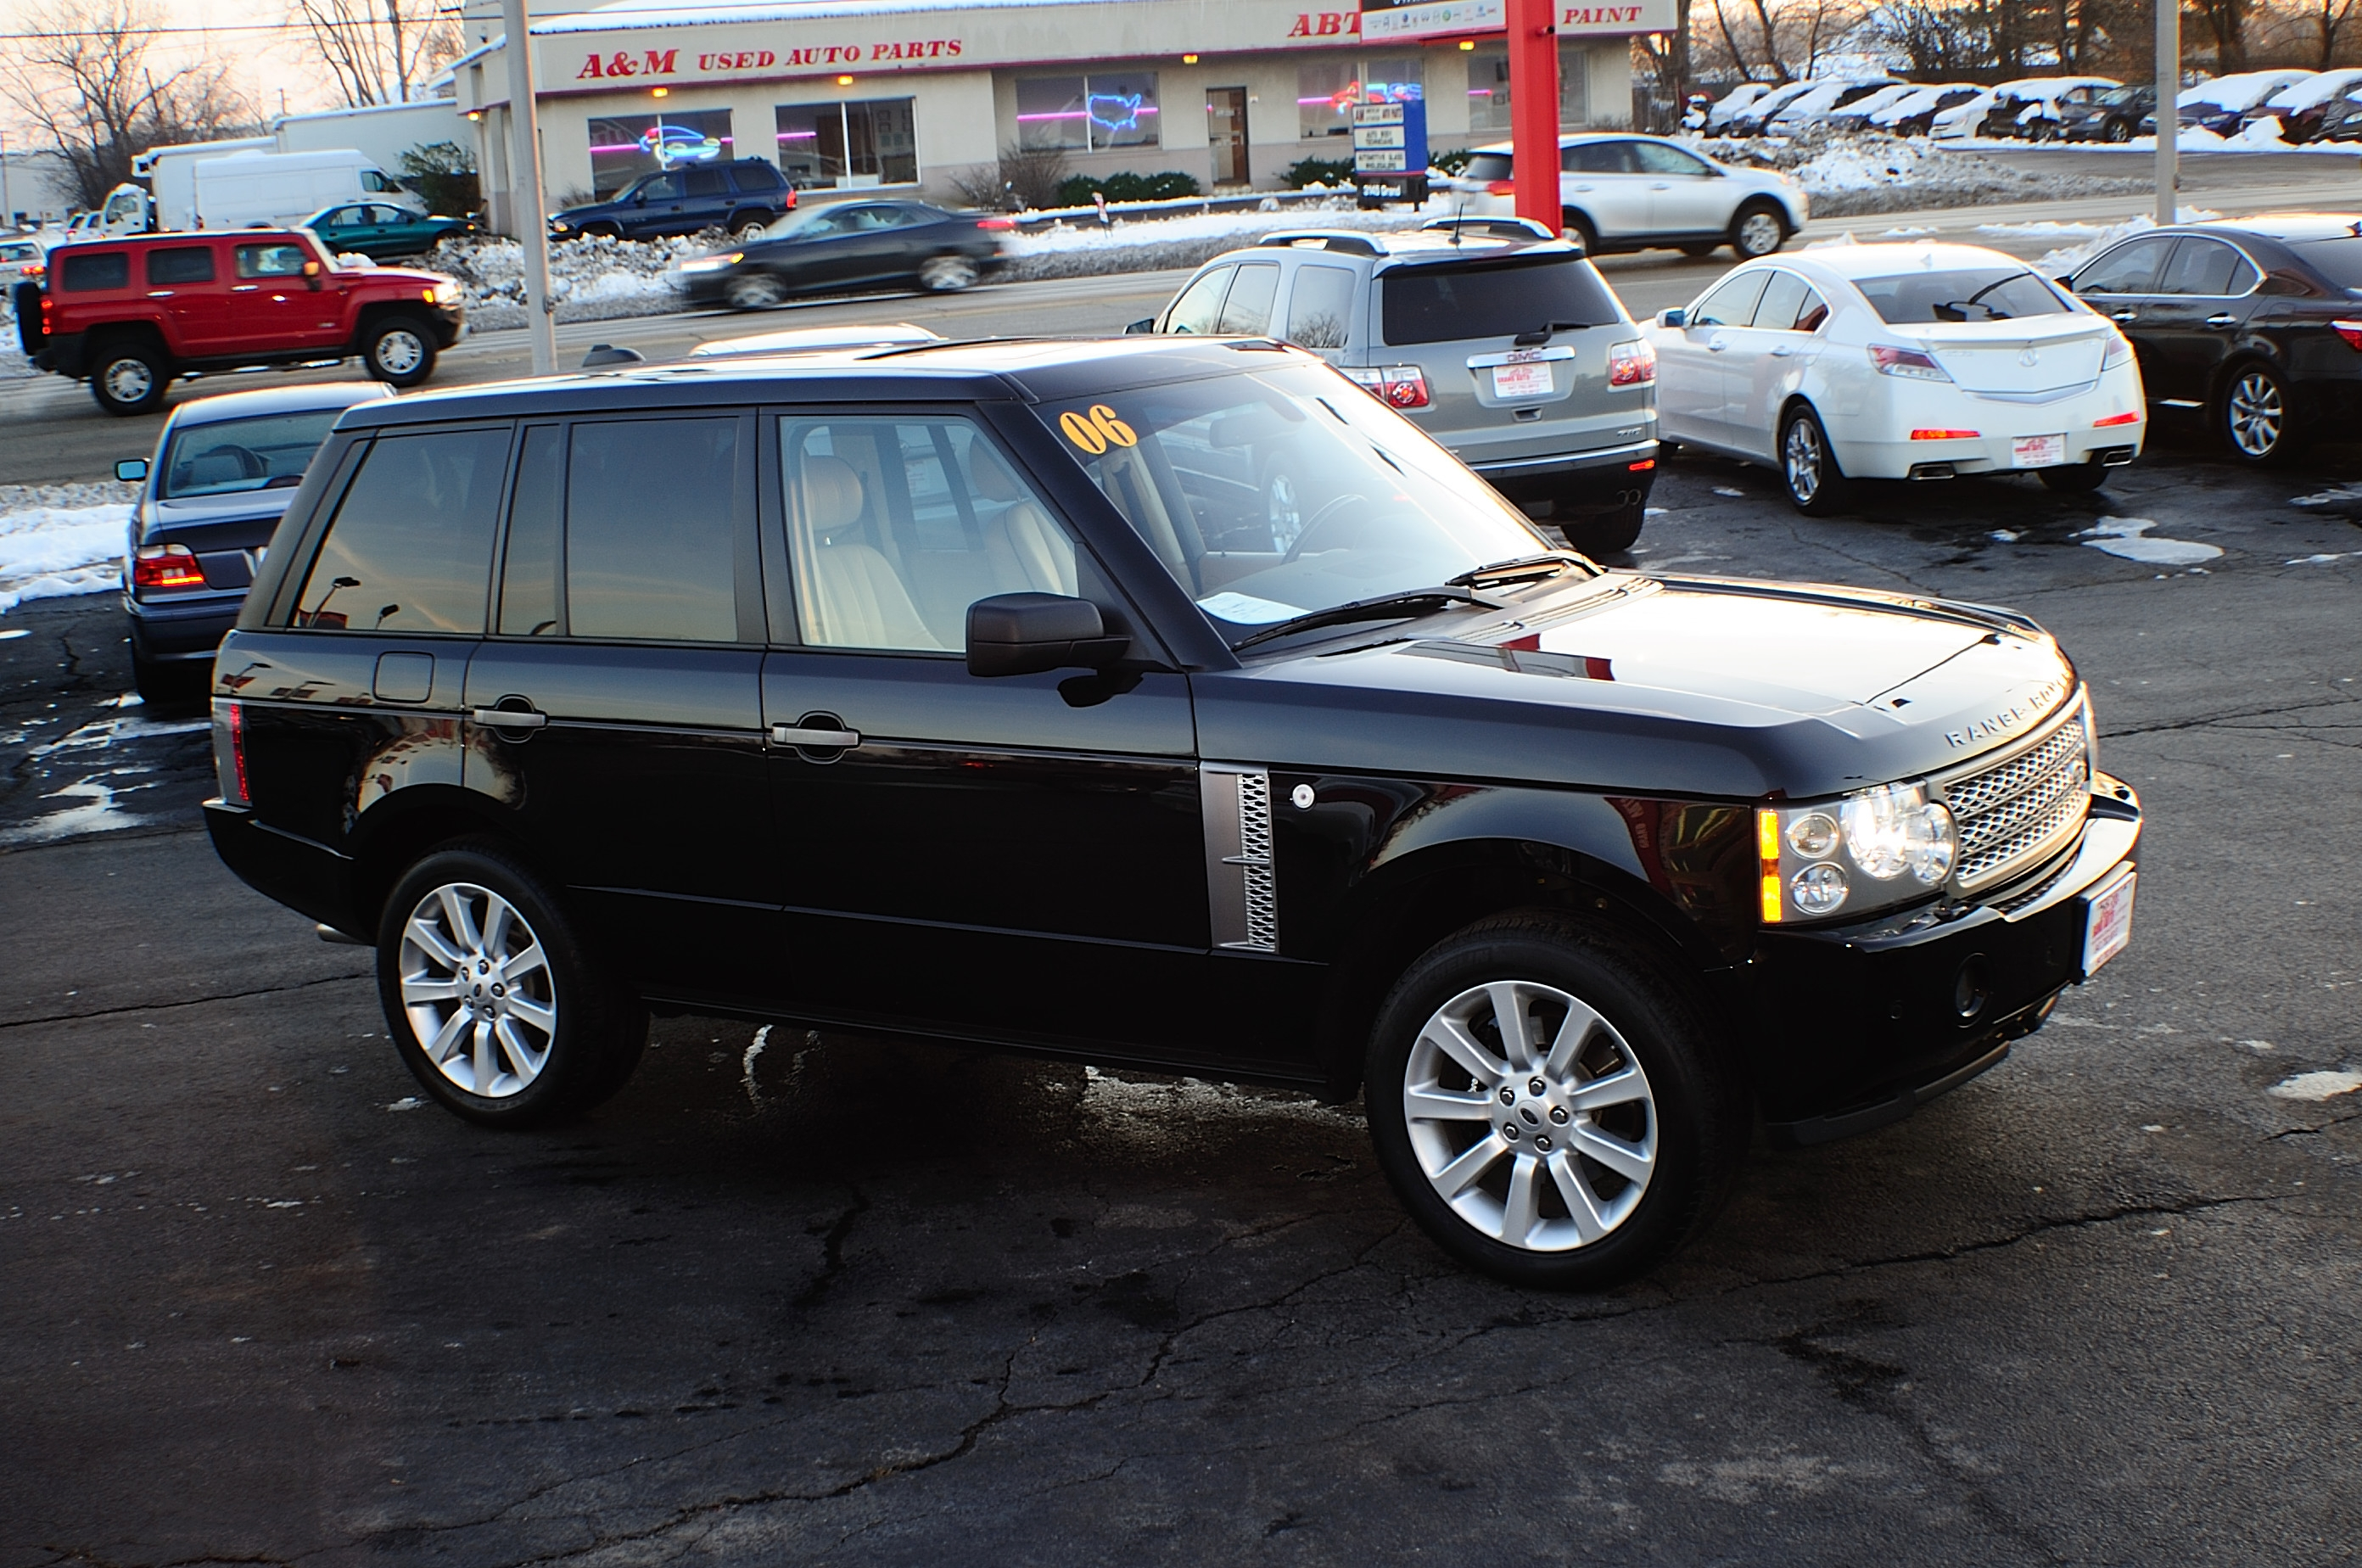 2006 land rover range rover black sport supercharged nav 4x4 bannockburn barrington beach park